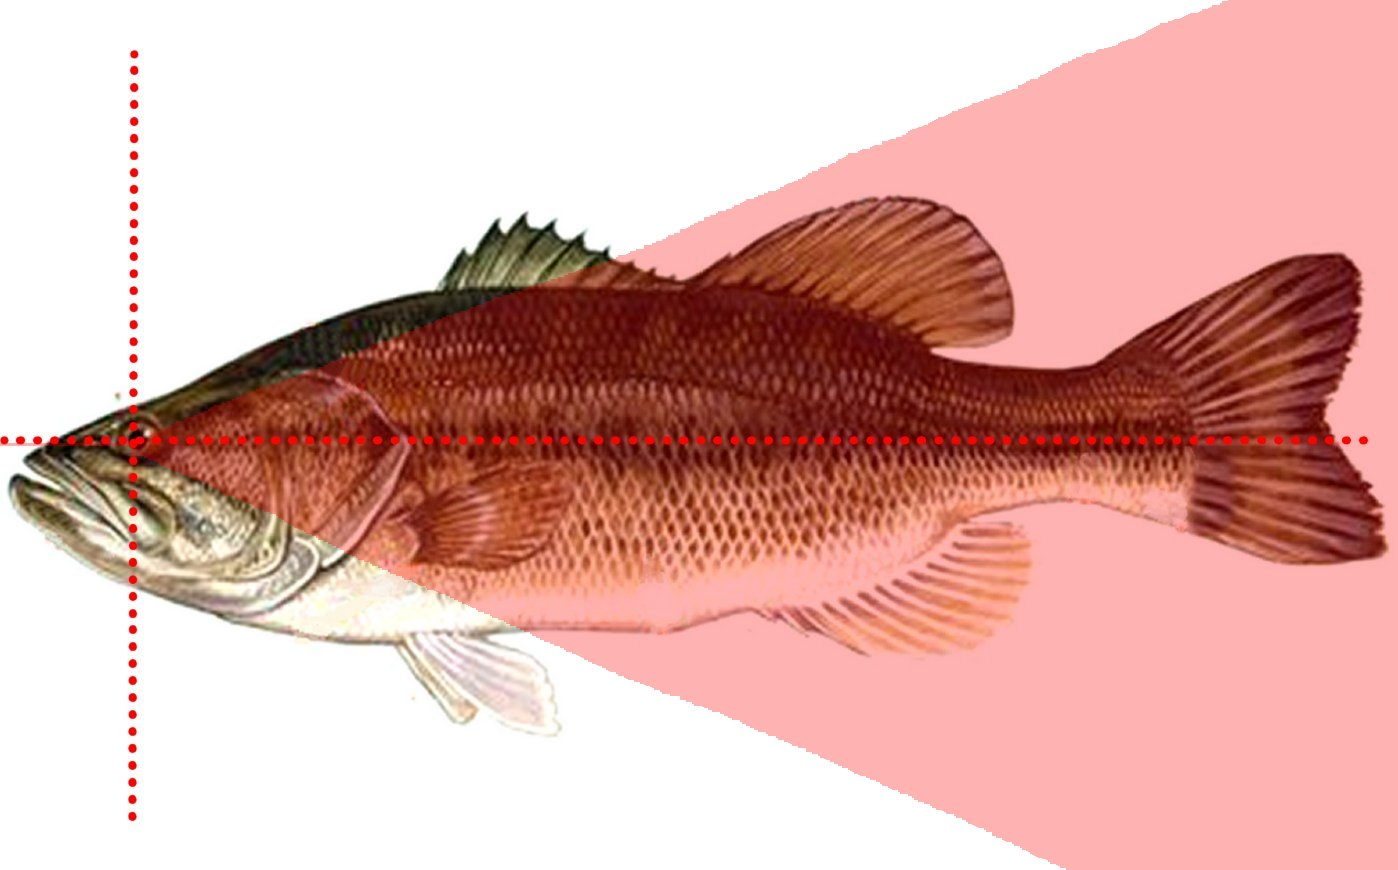 Do your fish need spectacles ? [Archive] - Cyphos.com